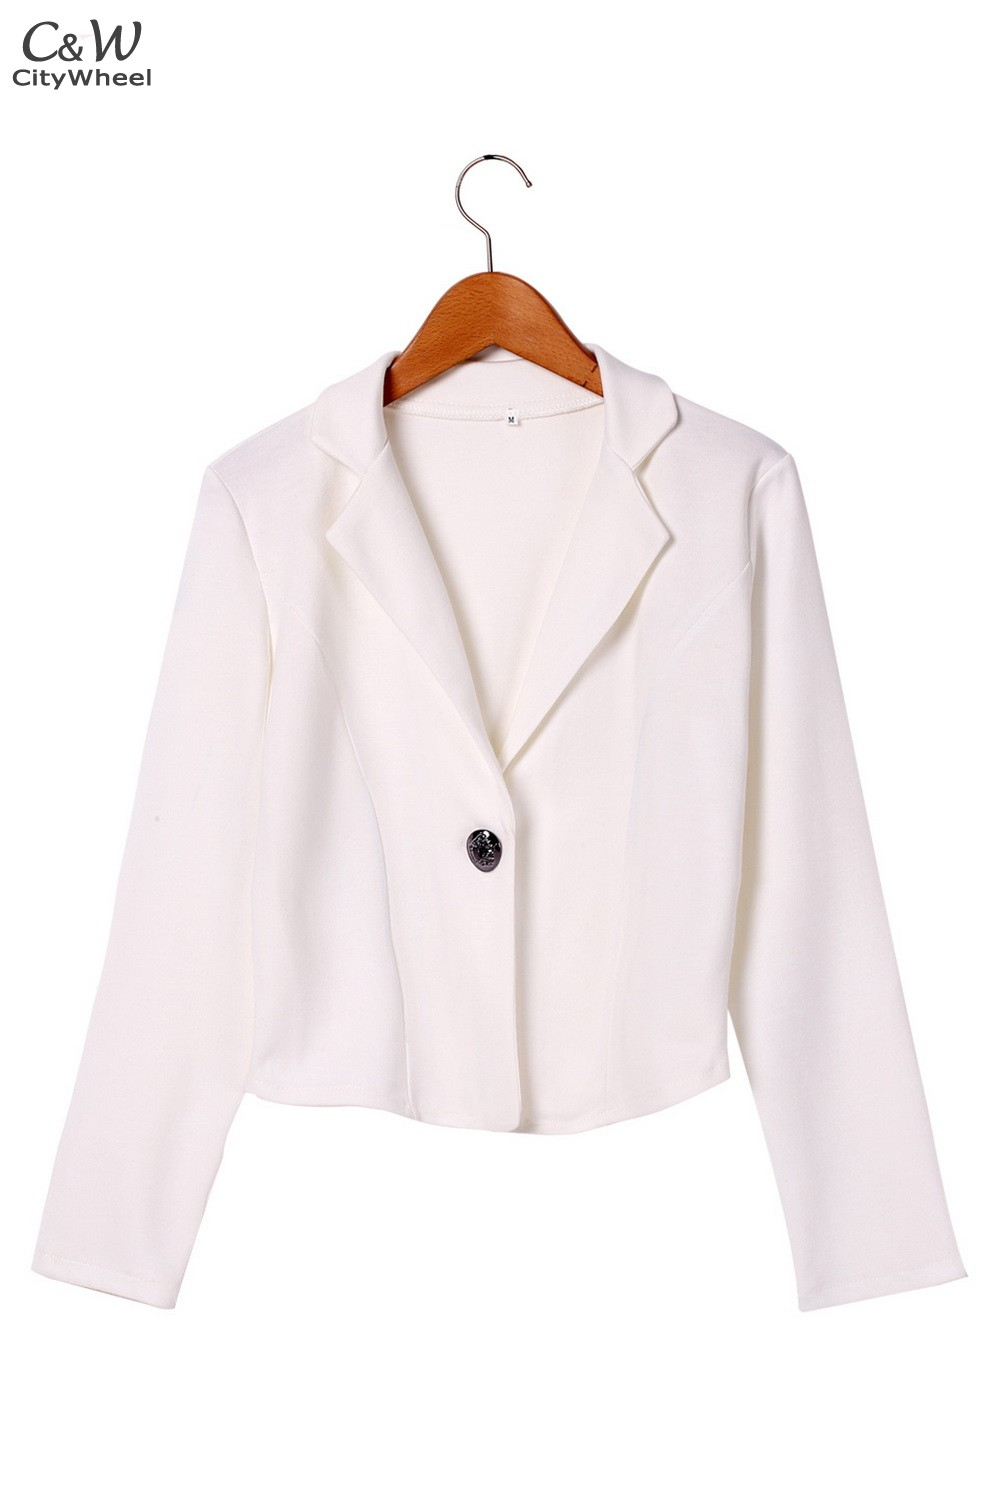 Free shipping BOTH ways on womens spring jackets, from our vast selection of styles. Fast delivery, and 24/7/ real-person service with a smile. Click or call